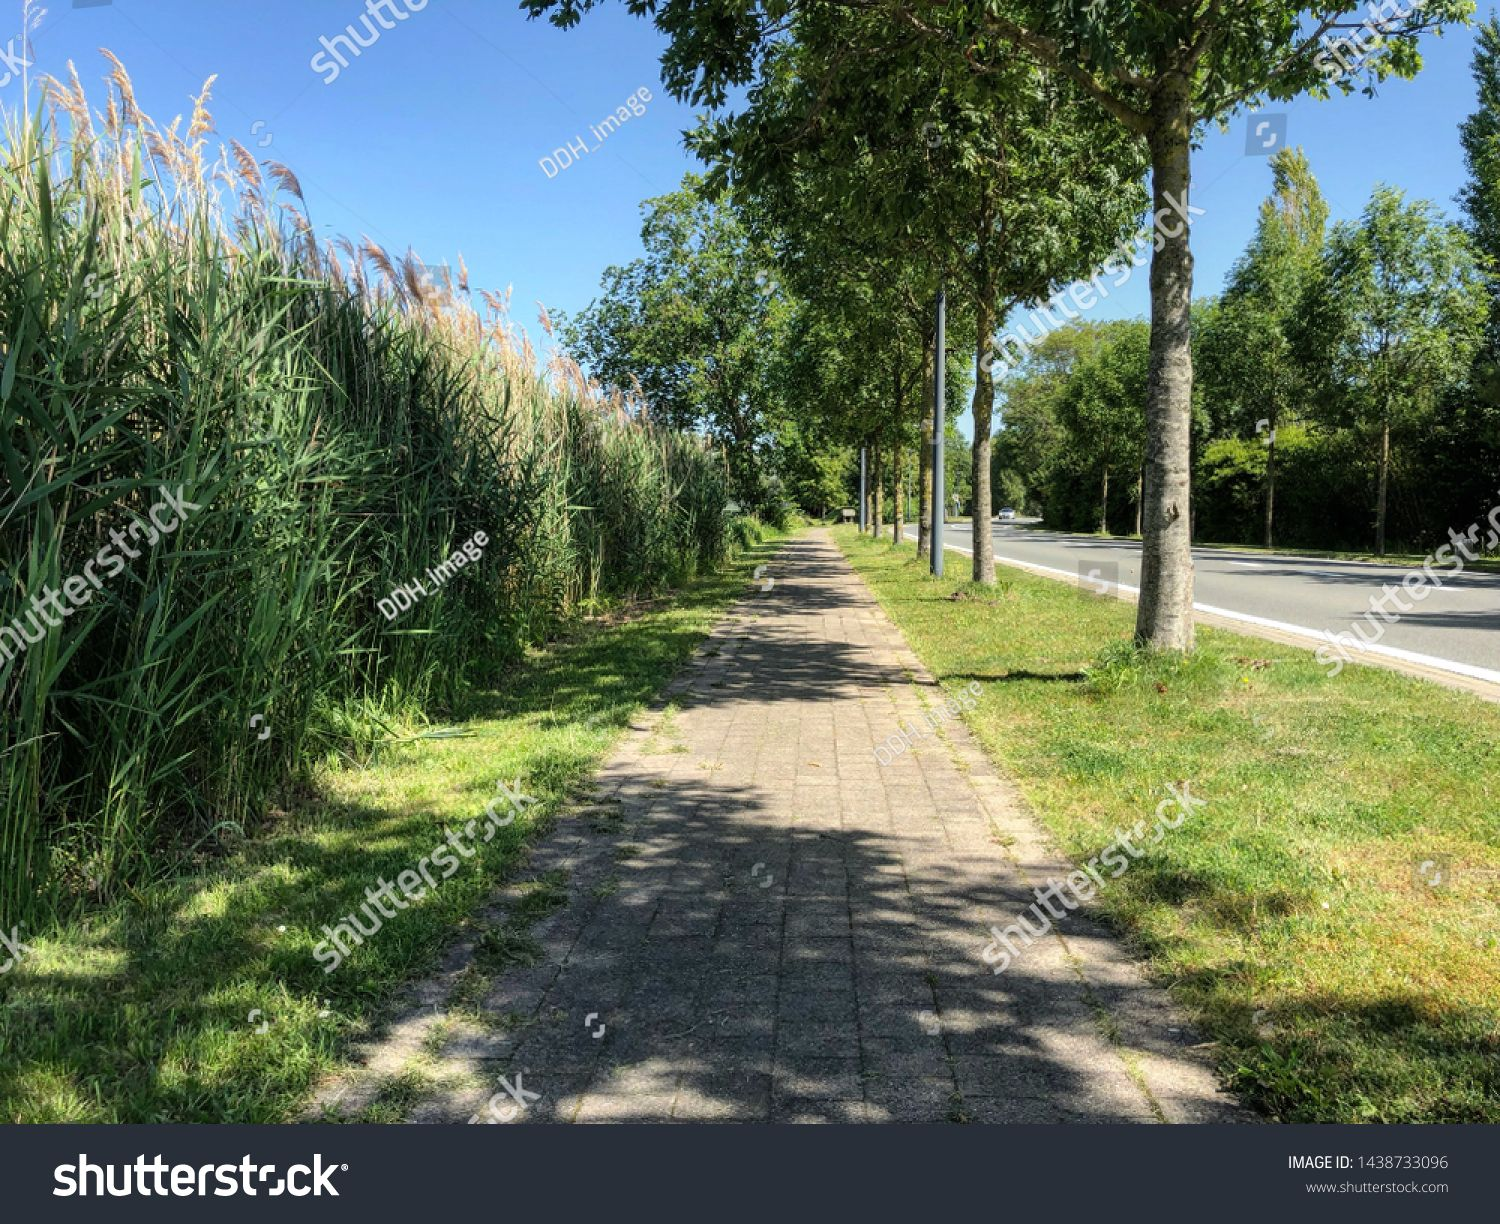 Outdoor Green Park Forest Next To River Rural Landscape Path With Trees And Grass And Modern Benche Sponsored Ad Forest Ri Park Forest Green Park Outdoor